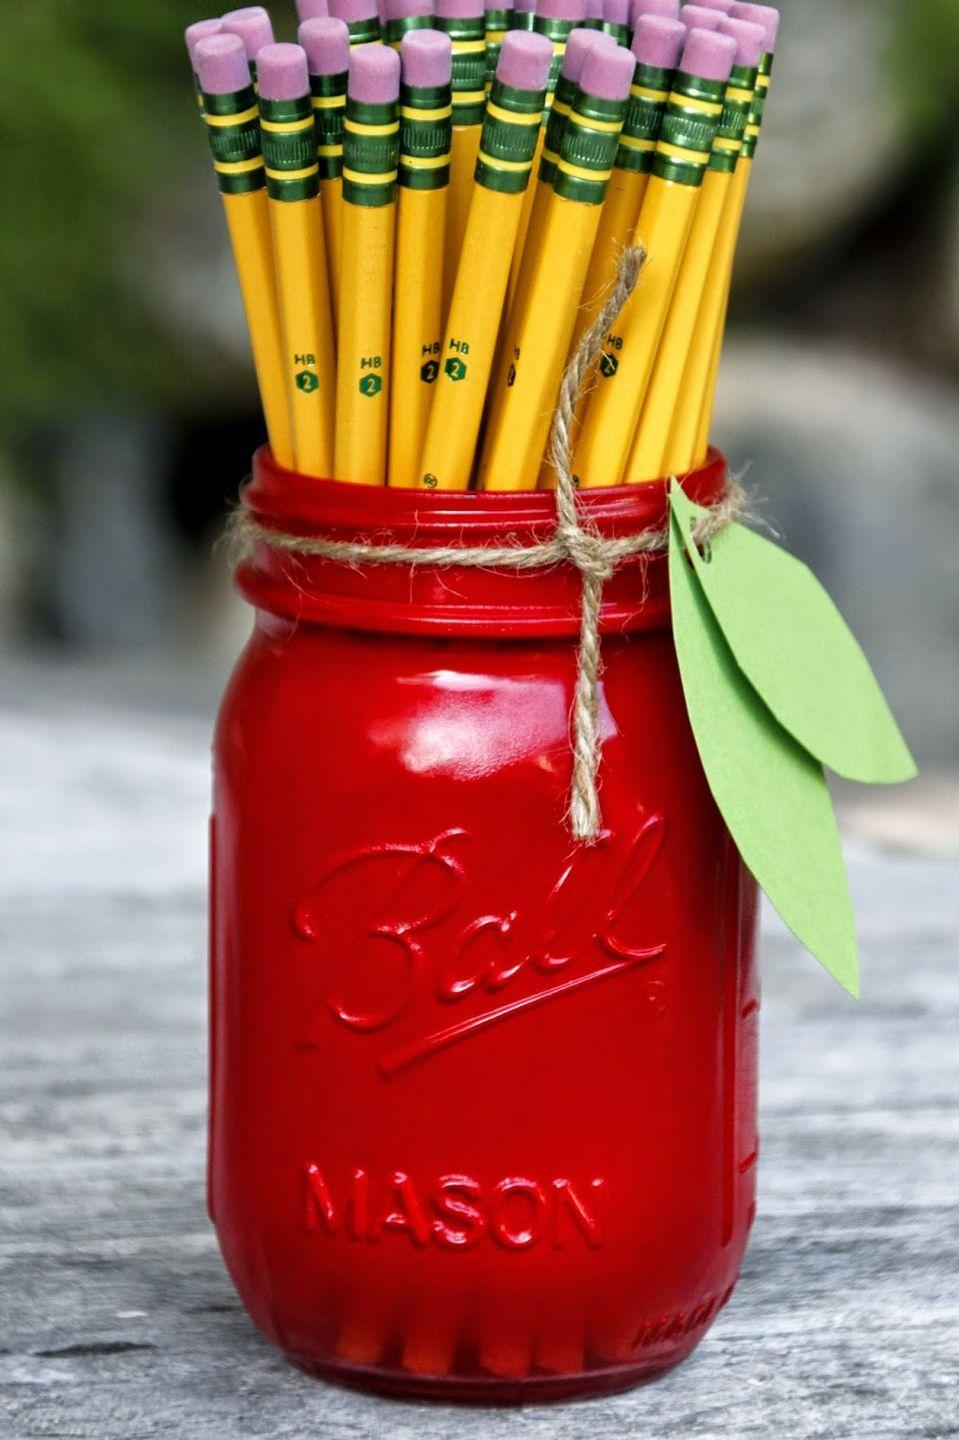 """<p>Use it as a pencil holder, or a catch-all for things like paper clips and thumb tacks. These also make great <a href=""""//www.goodhousekeeping.com/holidays/gift-ideas/g1432/teacher-gifts/"""" data-ylk=""""slk:teacher gifts"""" class=""""link rapid-noclick-resp"""">teacher gifts</a>. </p><p><em><a href=""""http://www.tillysnest.com/2014/08/down-home-blog-hopnumber-94-apple-mason.html"""" rel=""""nofollow noopener"""" target=""""_blank"""" data-ylk=""""slk:Get the tutorial at Tilly's Nest »"""" class=""""link rapid-noclick-resp"""">Get the tutorial at Tilly's Nest »</a></em></p>"""